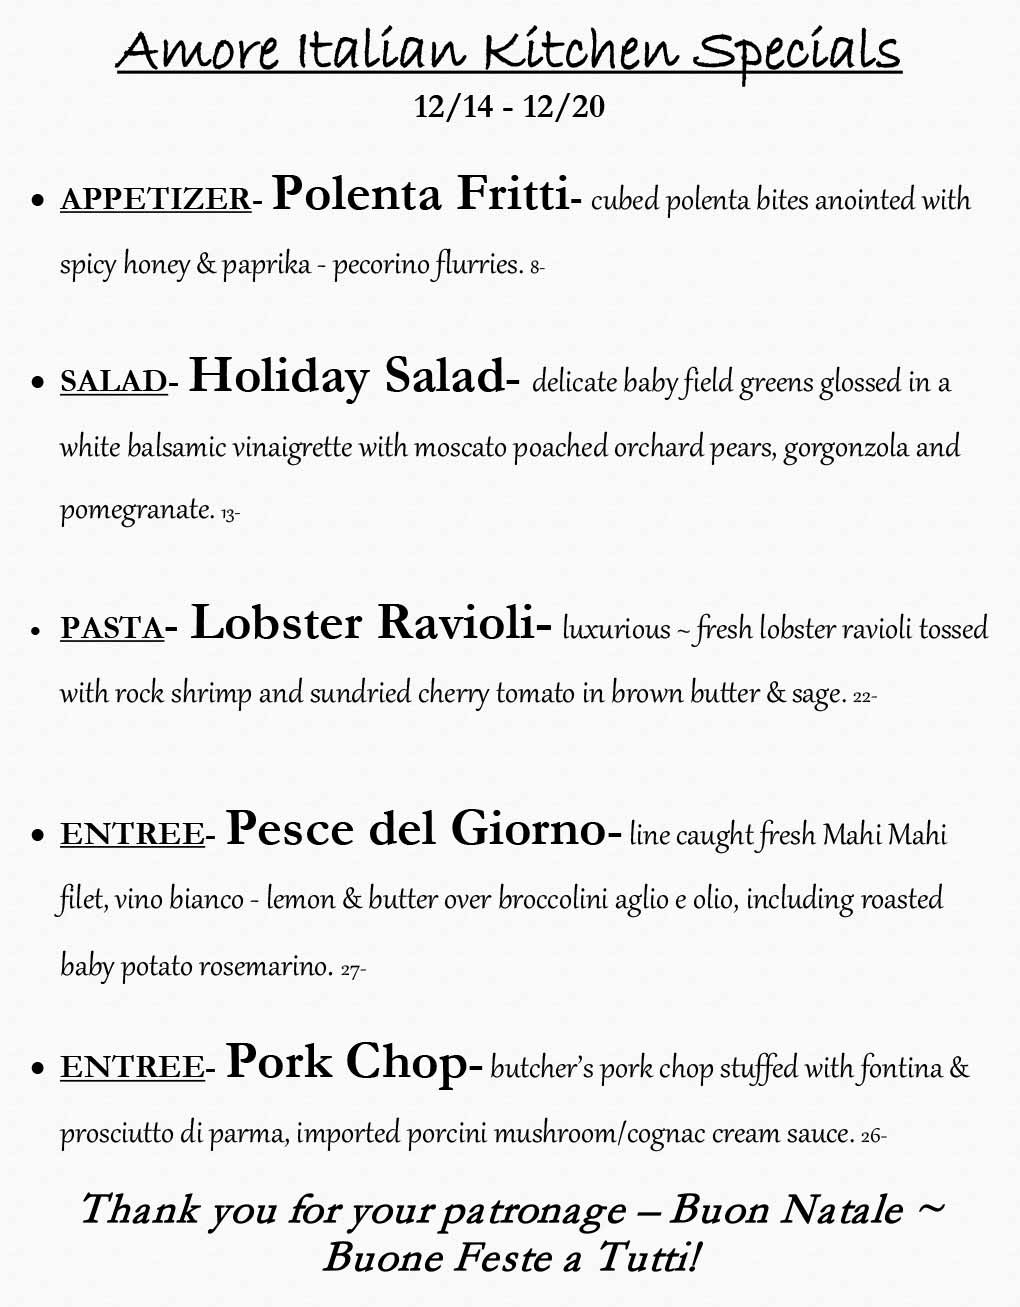 Amore Weekly Specials from 12/14 - 12/20